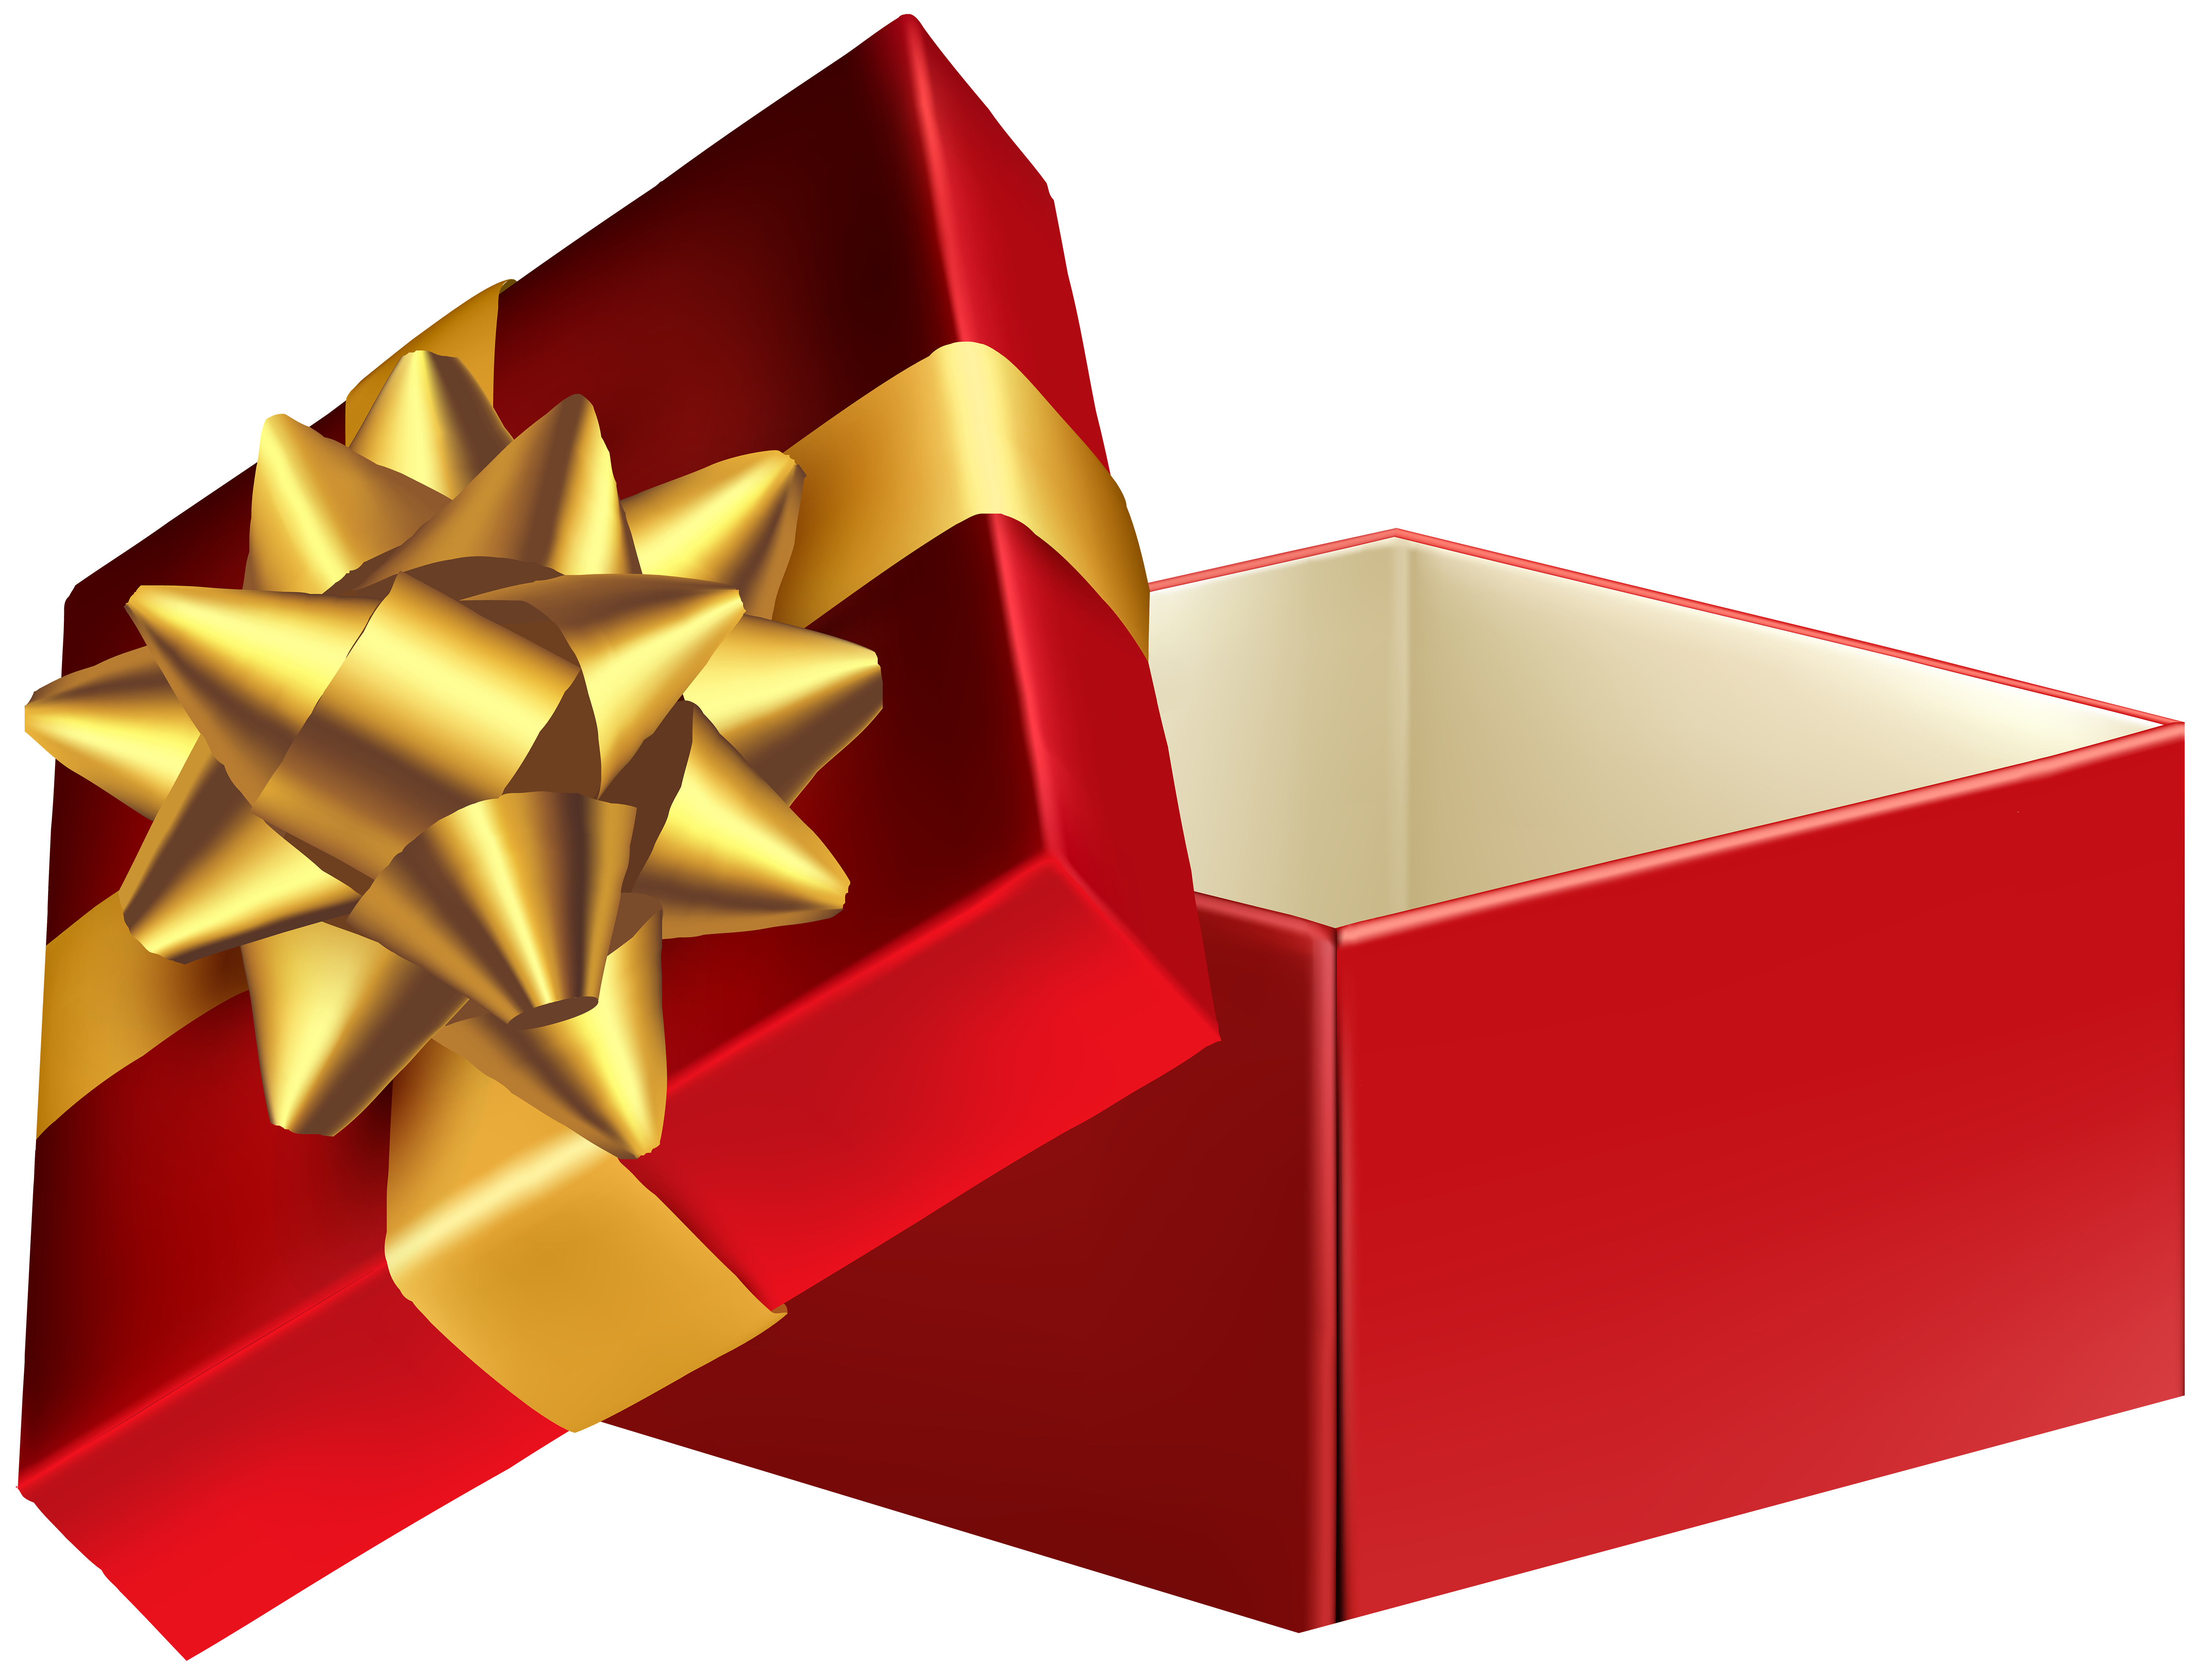 Boxes clipart transparent. Open gift box png